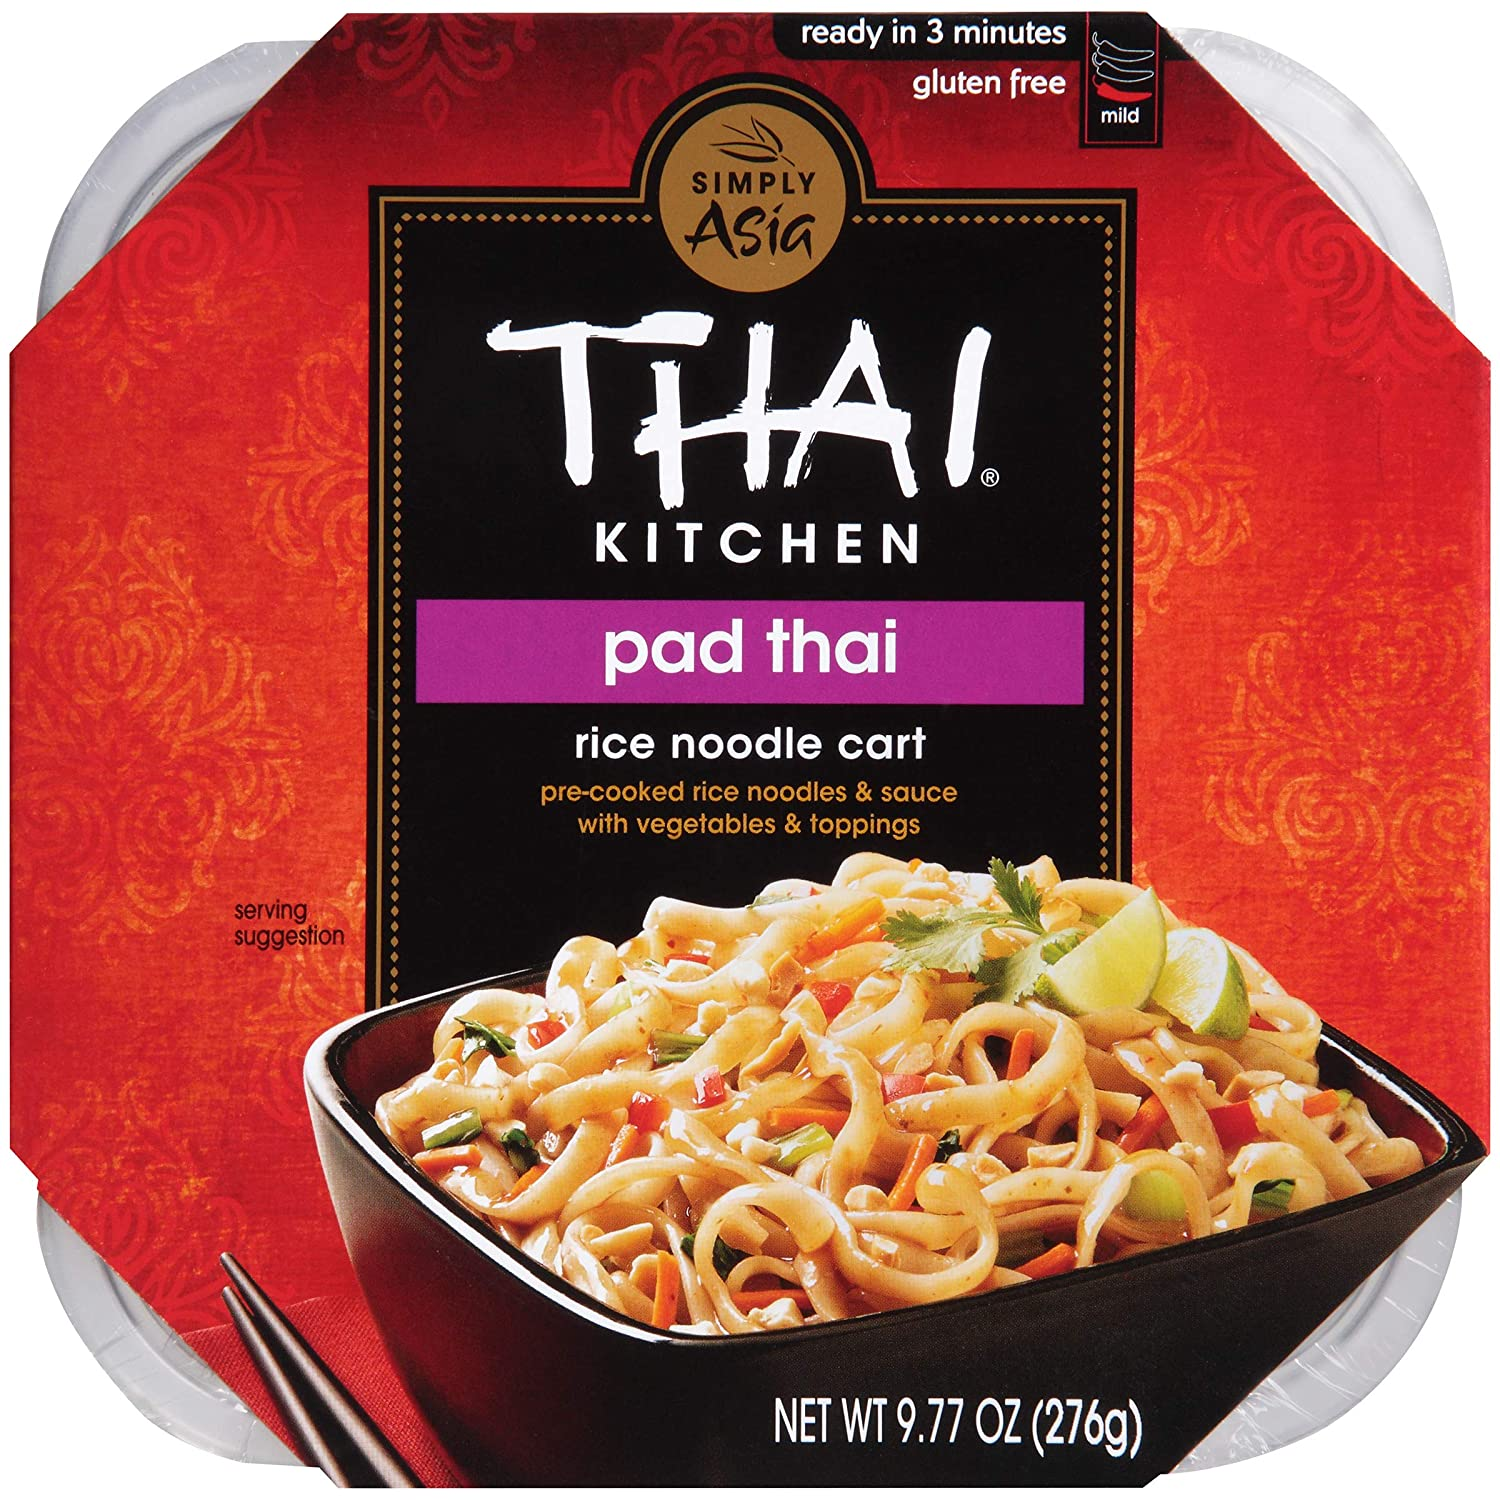 Thai Kitchen Gluten Free Pad Thai Rice Noodle Cart, 9.77 oz